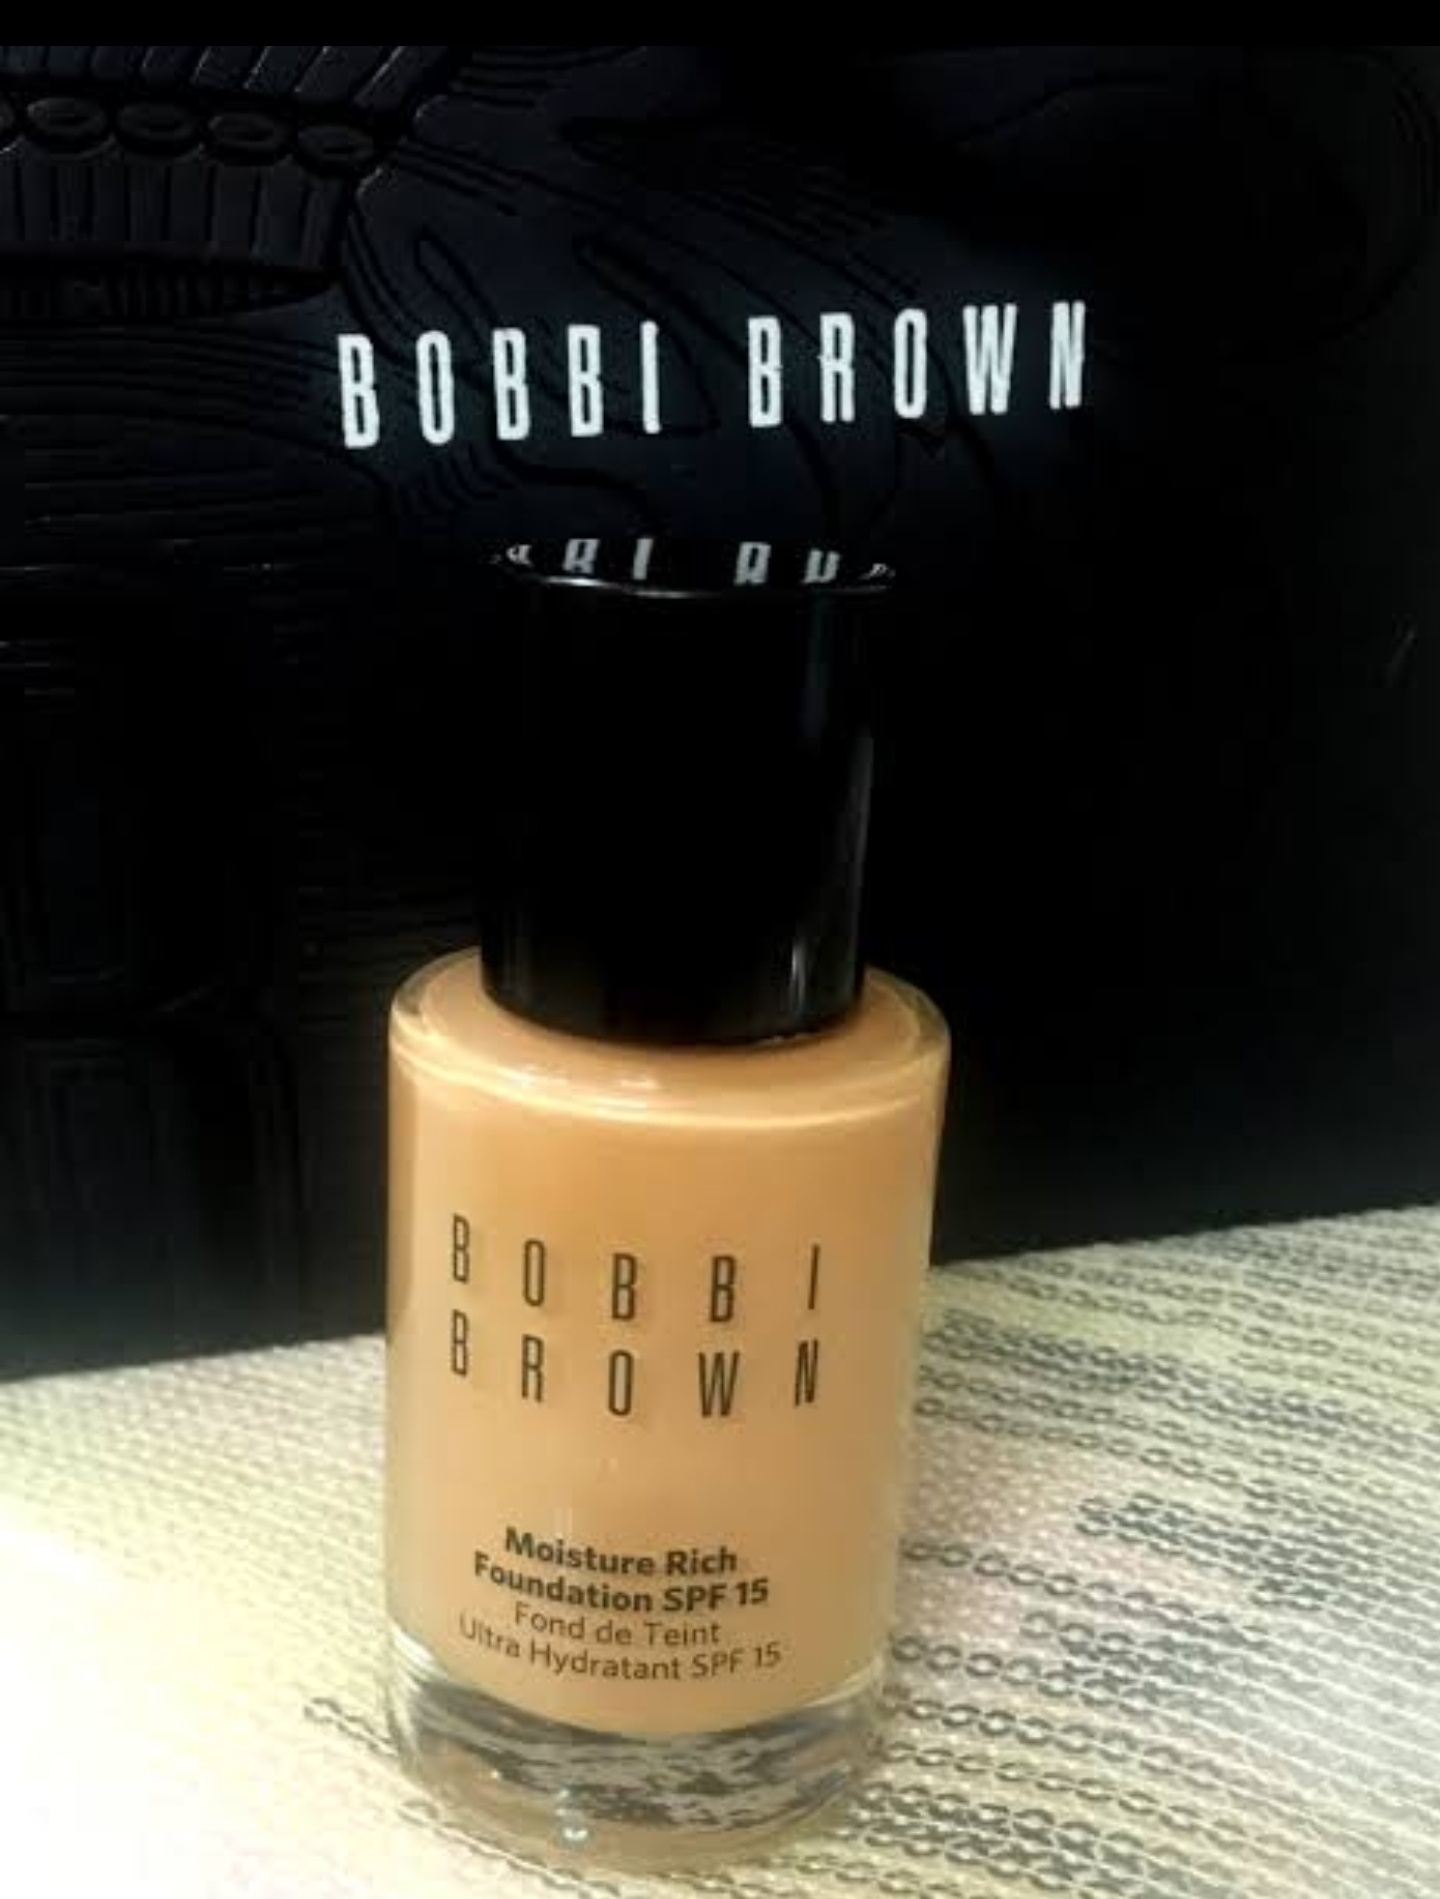 Bobbi Brown Moisture Rich Foundation -Long lasting and good coverage foundation-By garima.sharma28